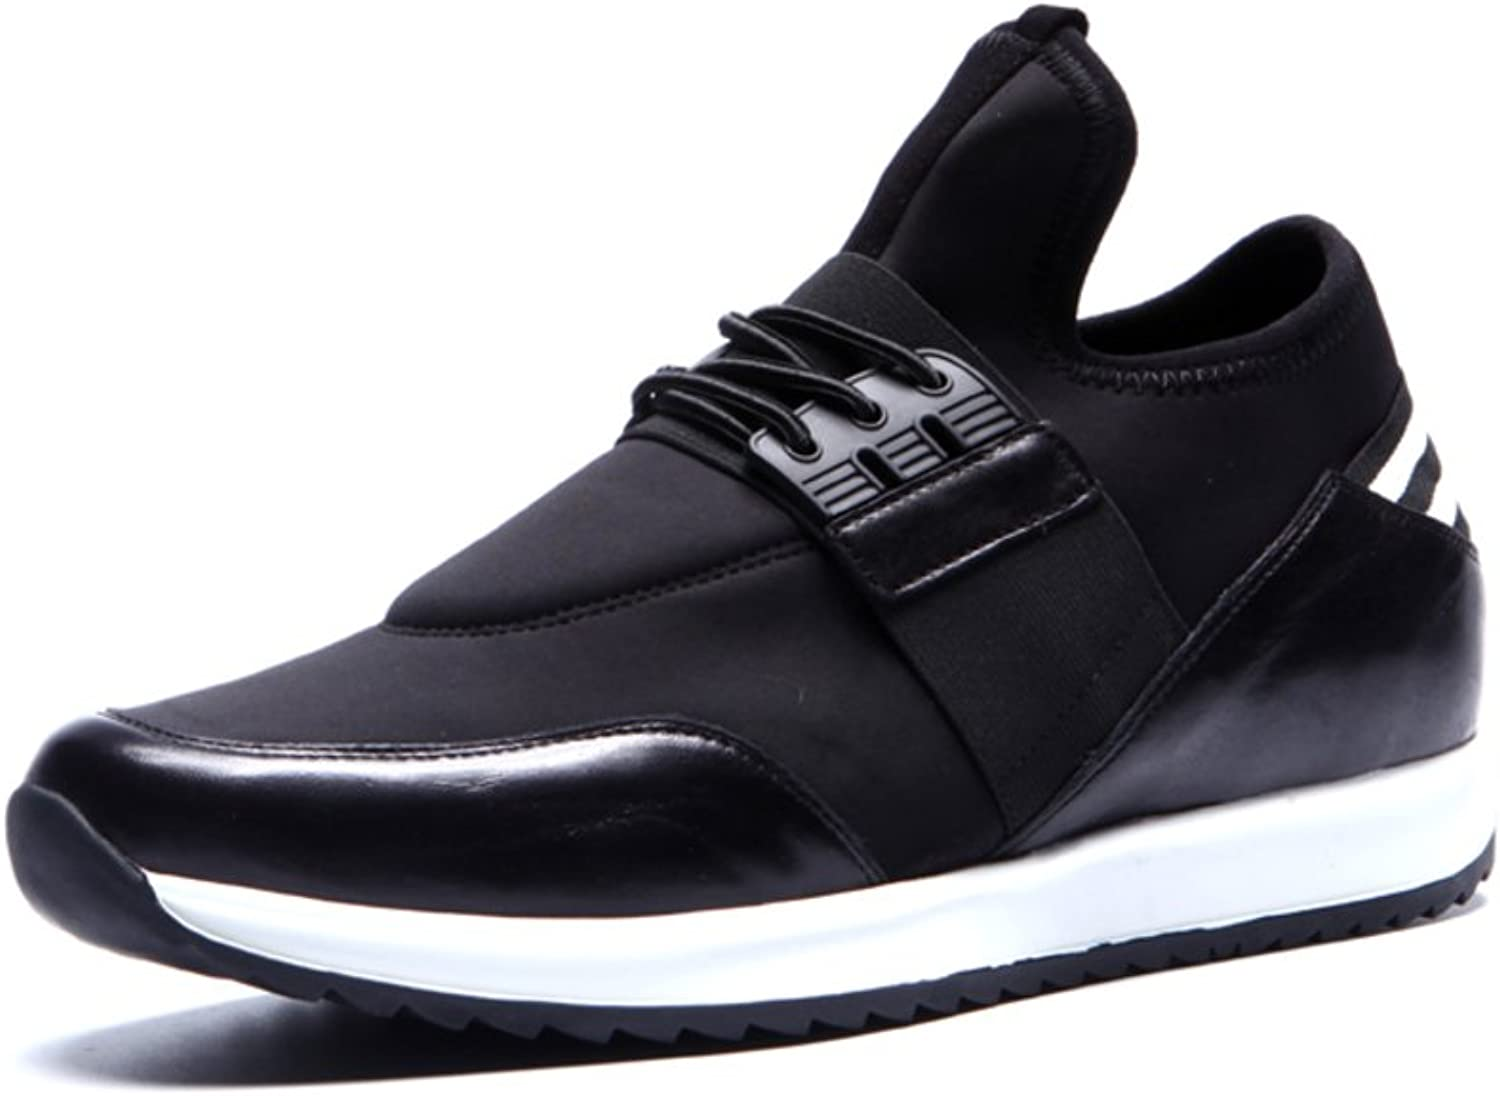 WLJSLLZYQ Autumn Sports shoes The Korean Version of Height Increasing shoes Sport shoes Running shoes